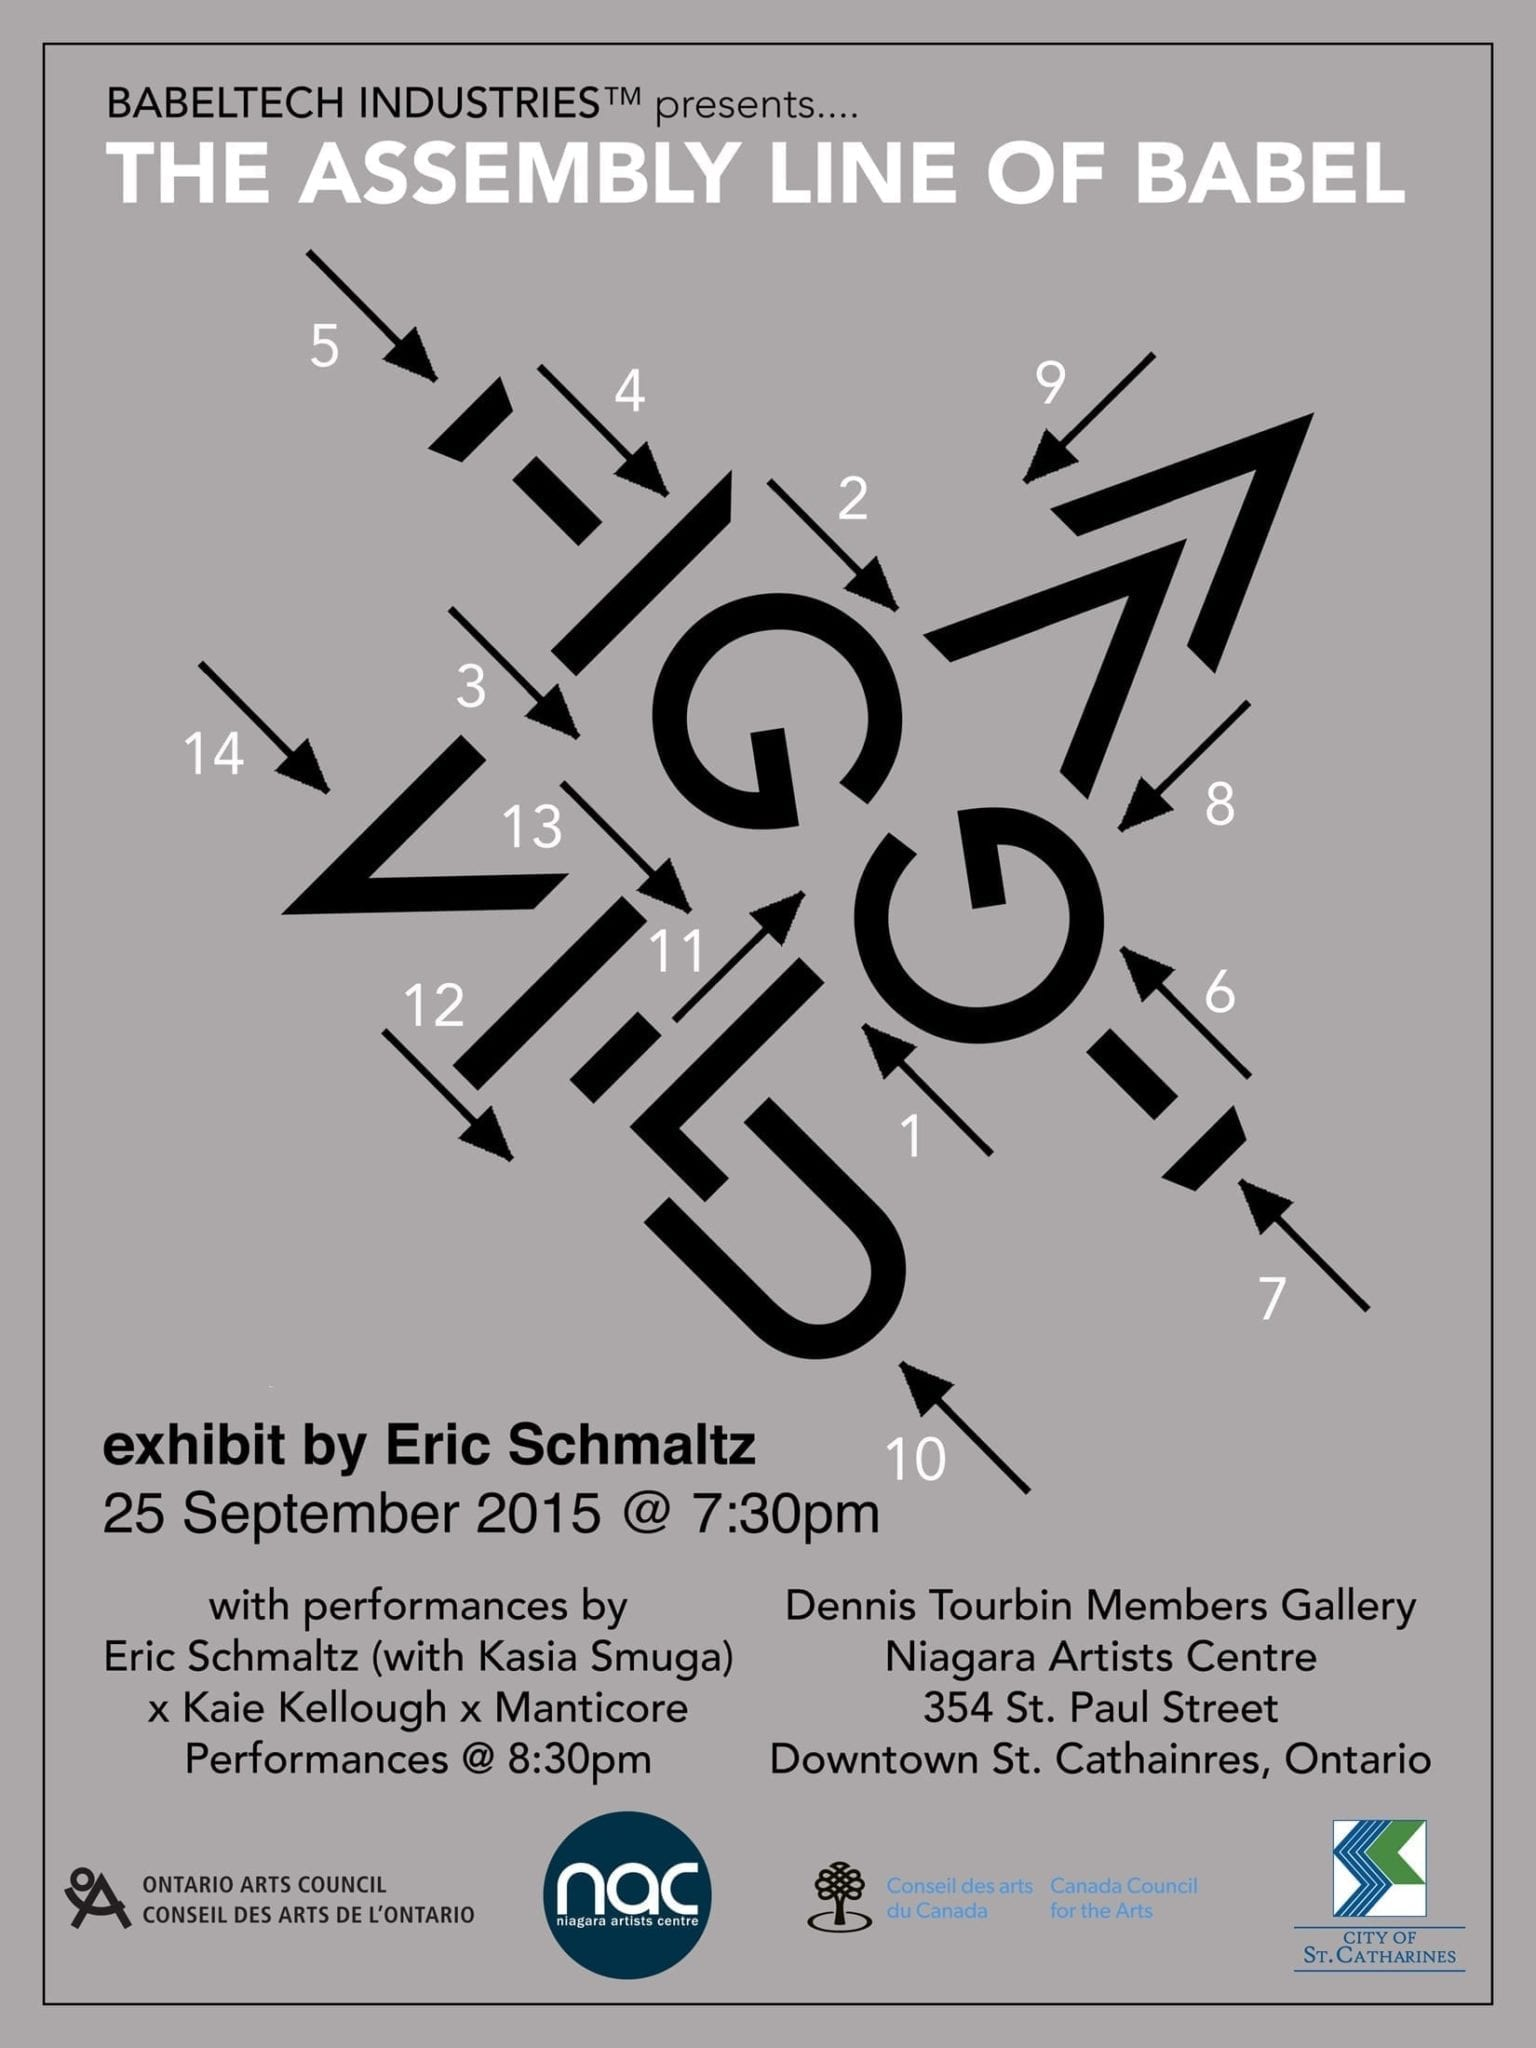 BABELTECH INDUSTRIES™ presents… THE ASSEMBLY LINE OF BABEL, an exhibit by Eric Schmaltz  srcset=